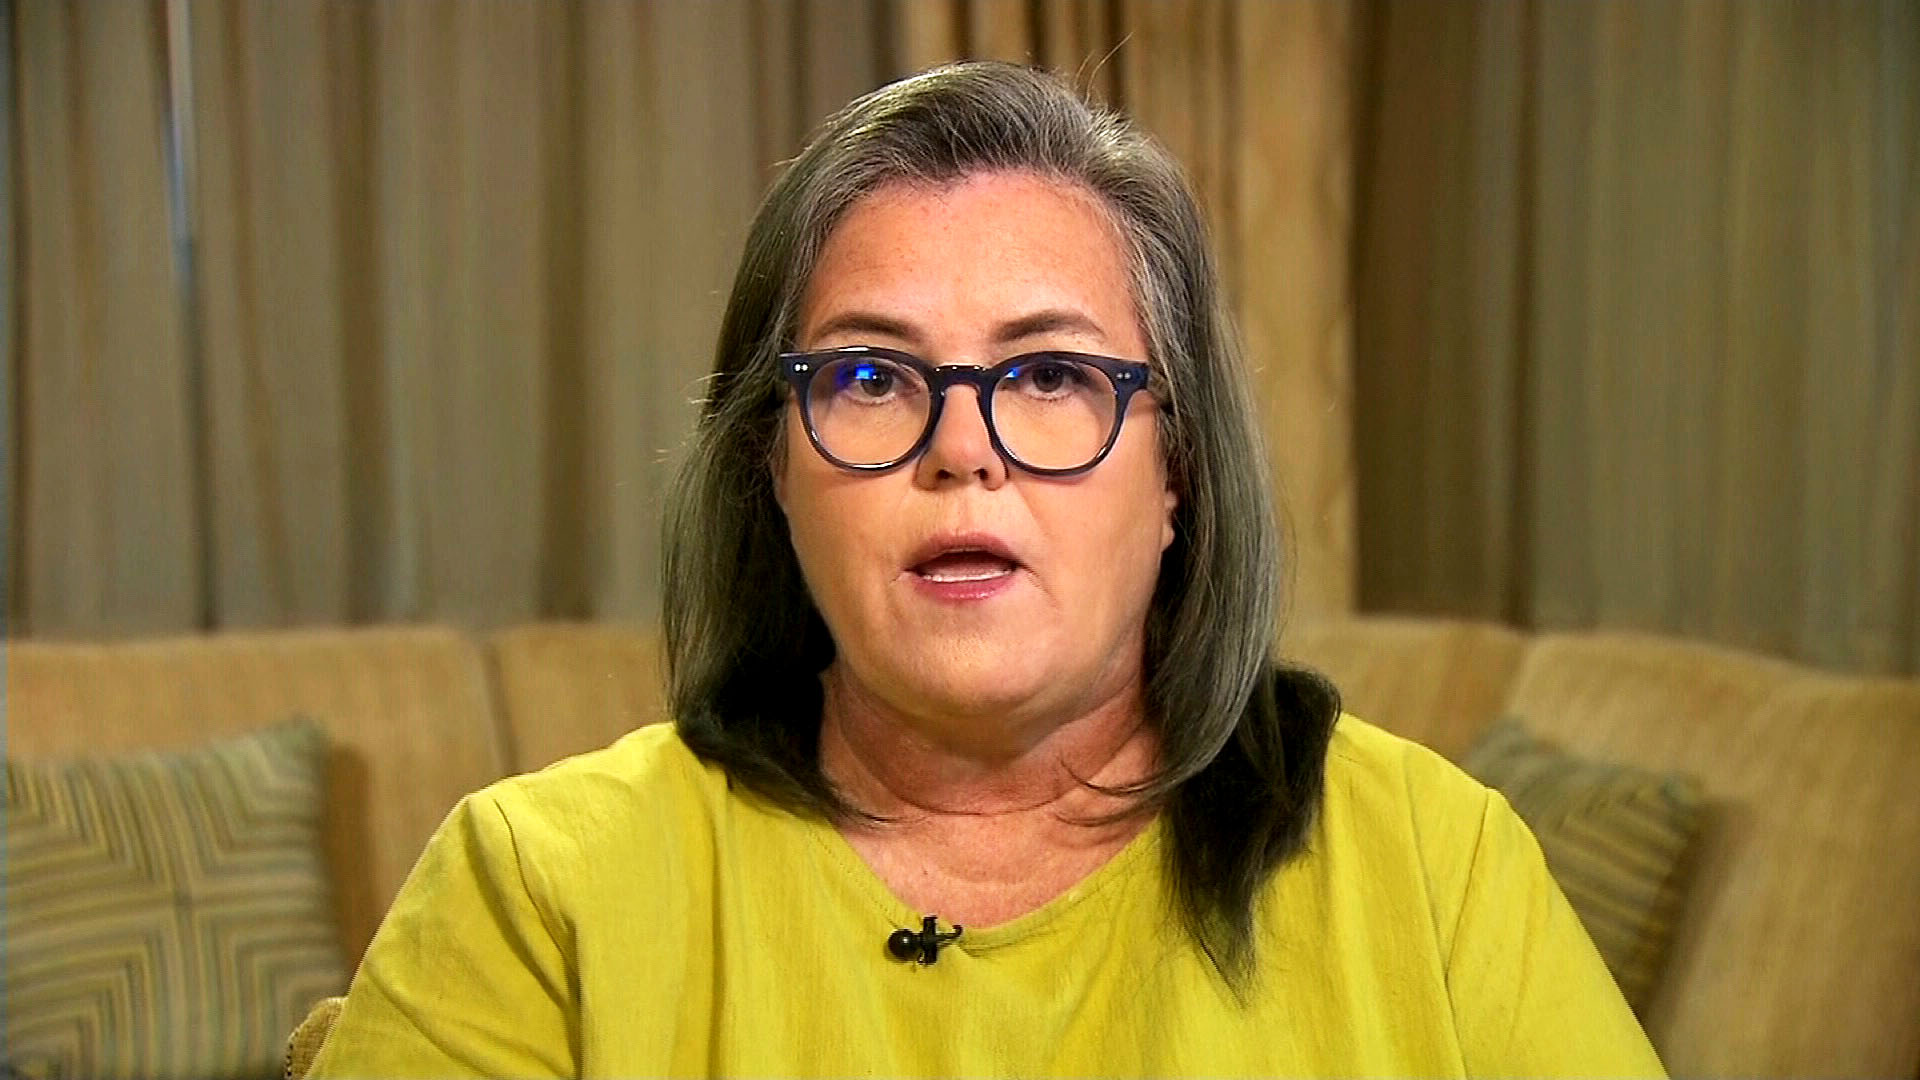 Watch Rosie O'Donnell video